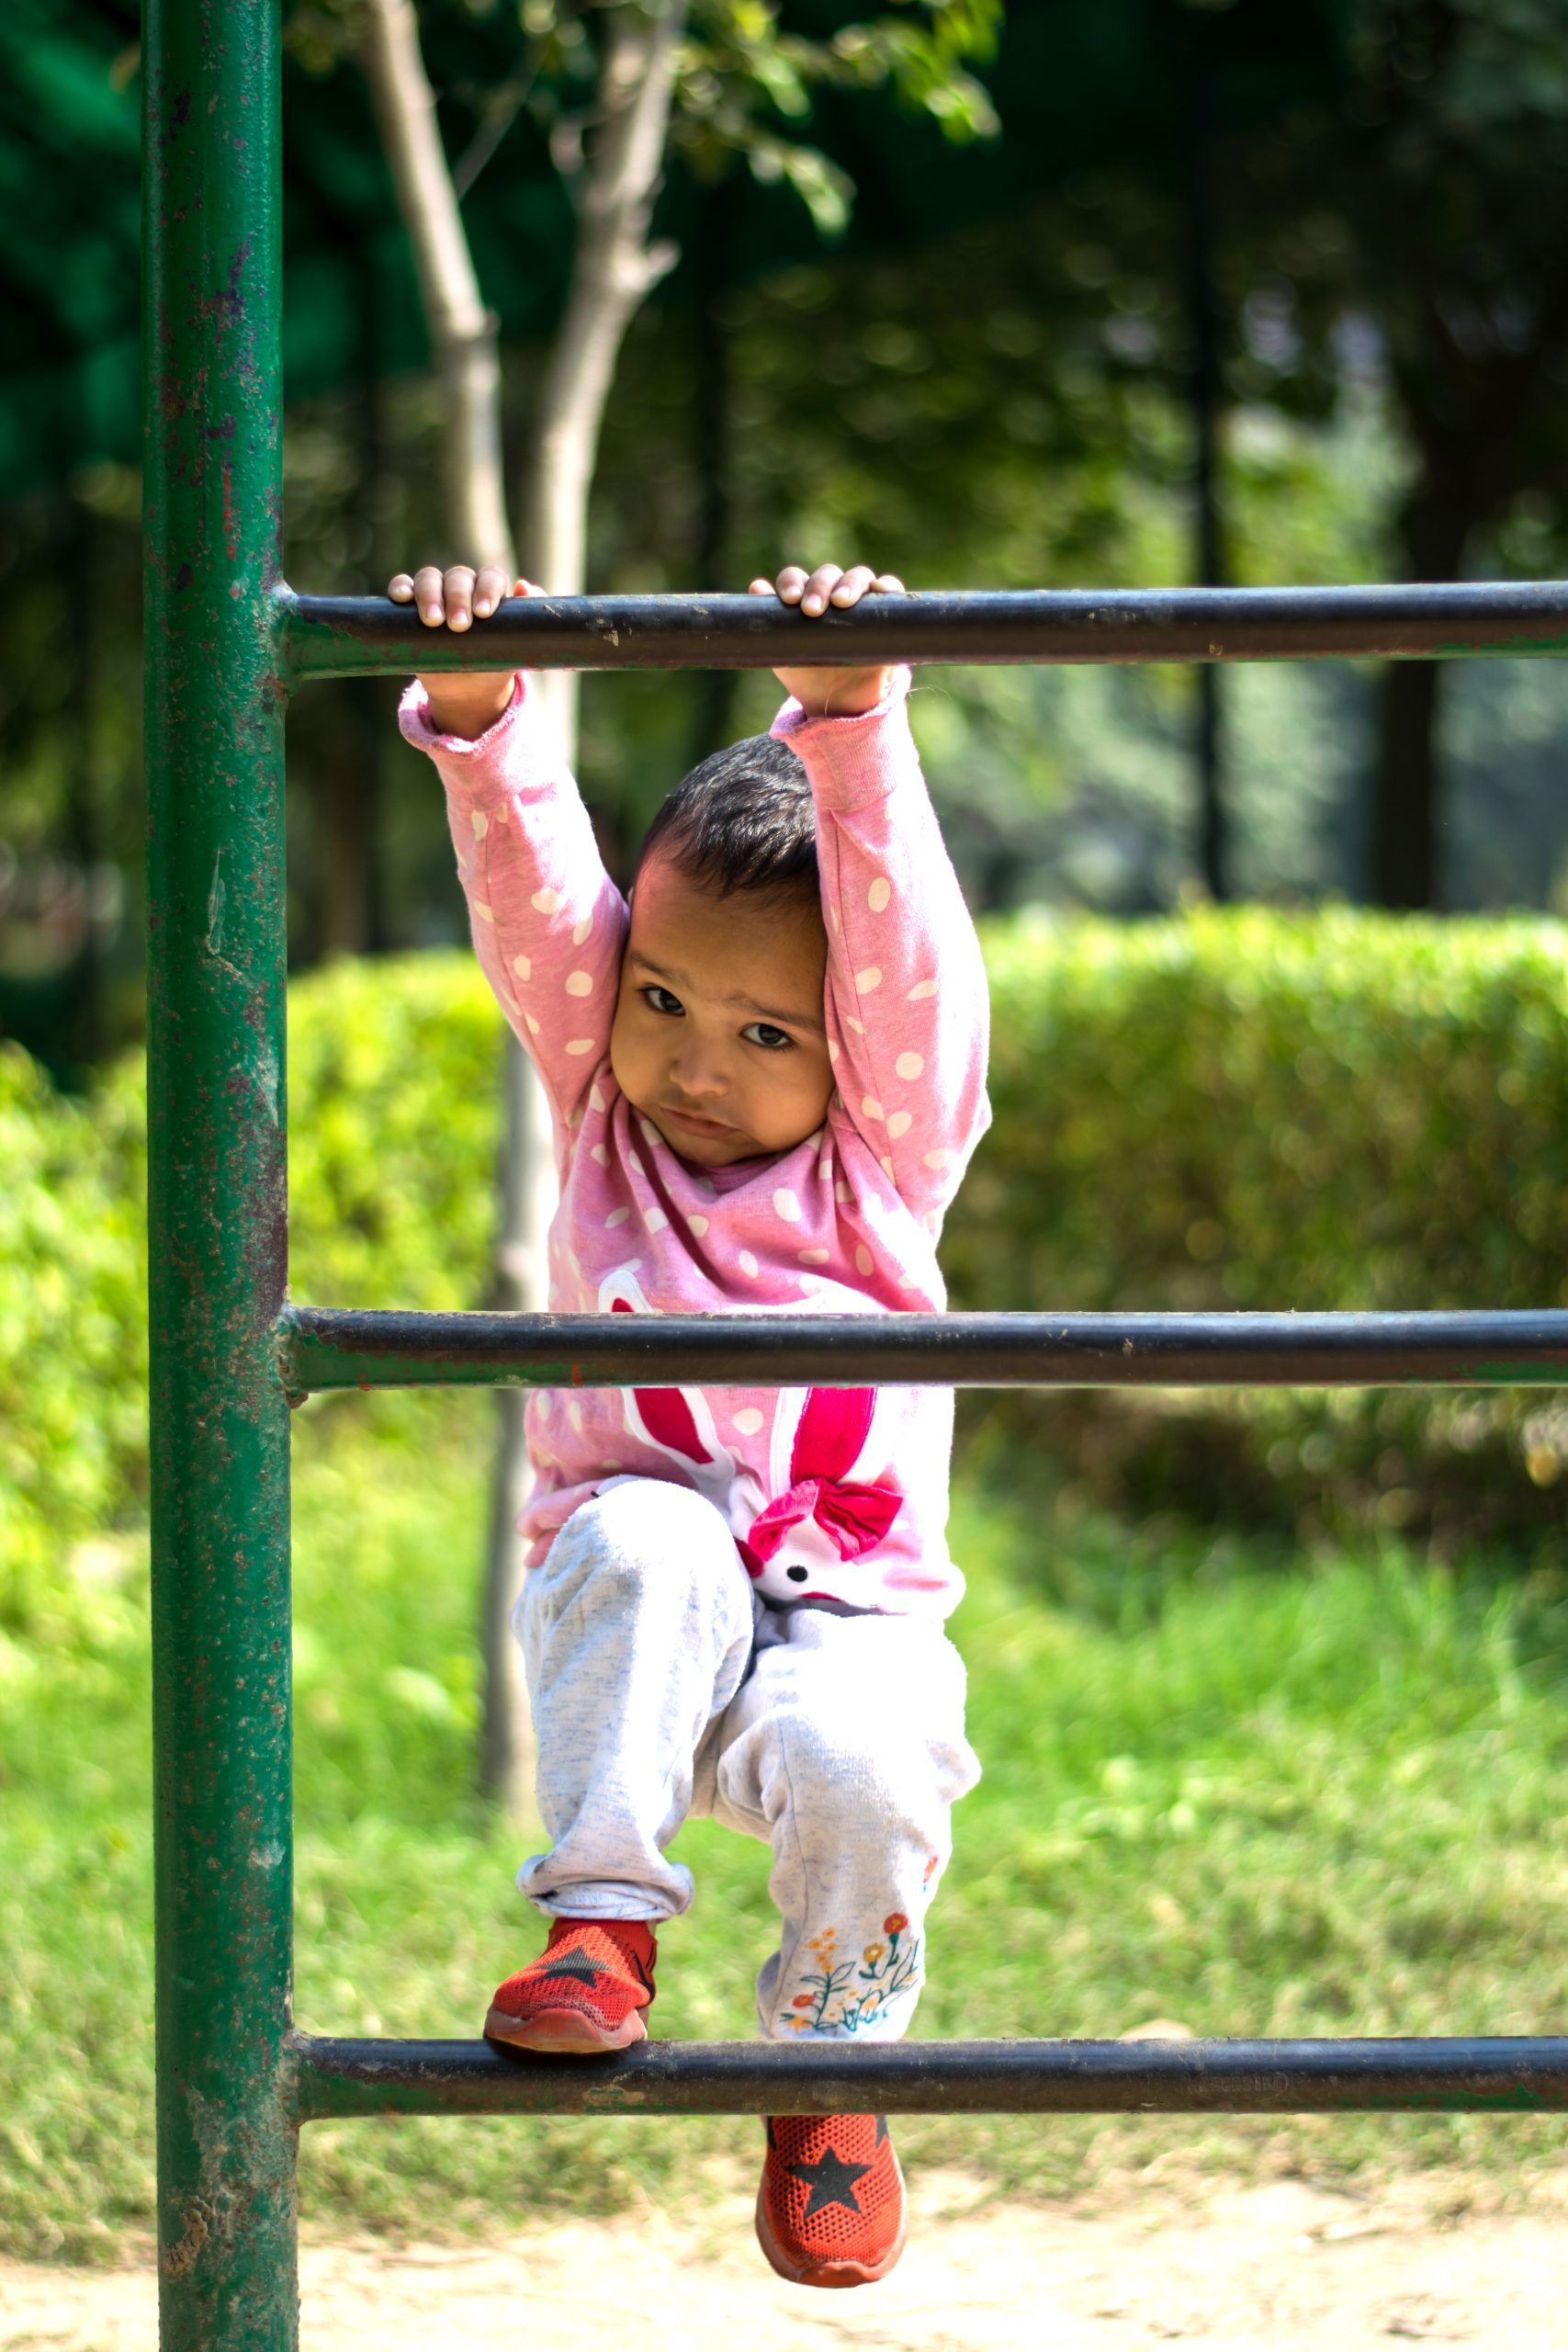 A kid playing in a park